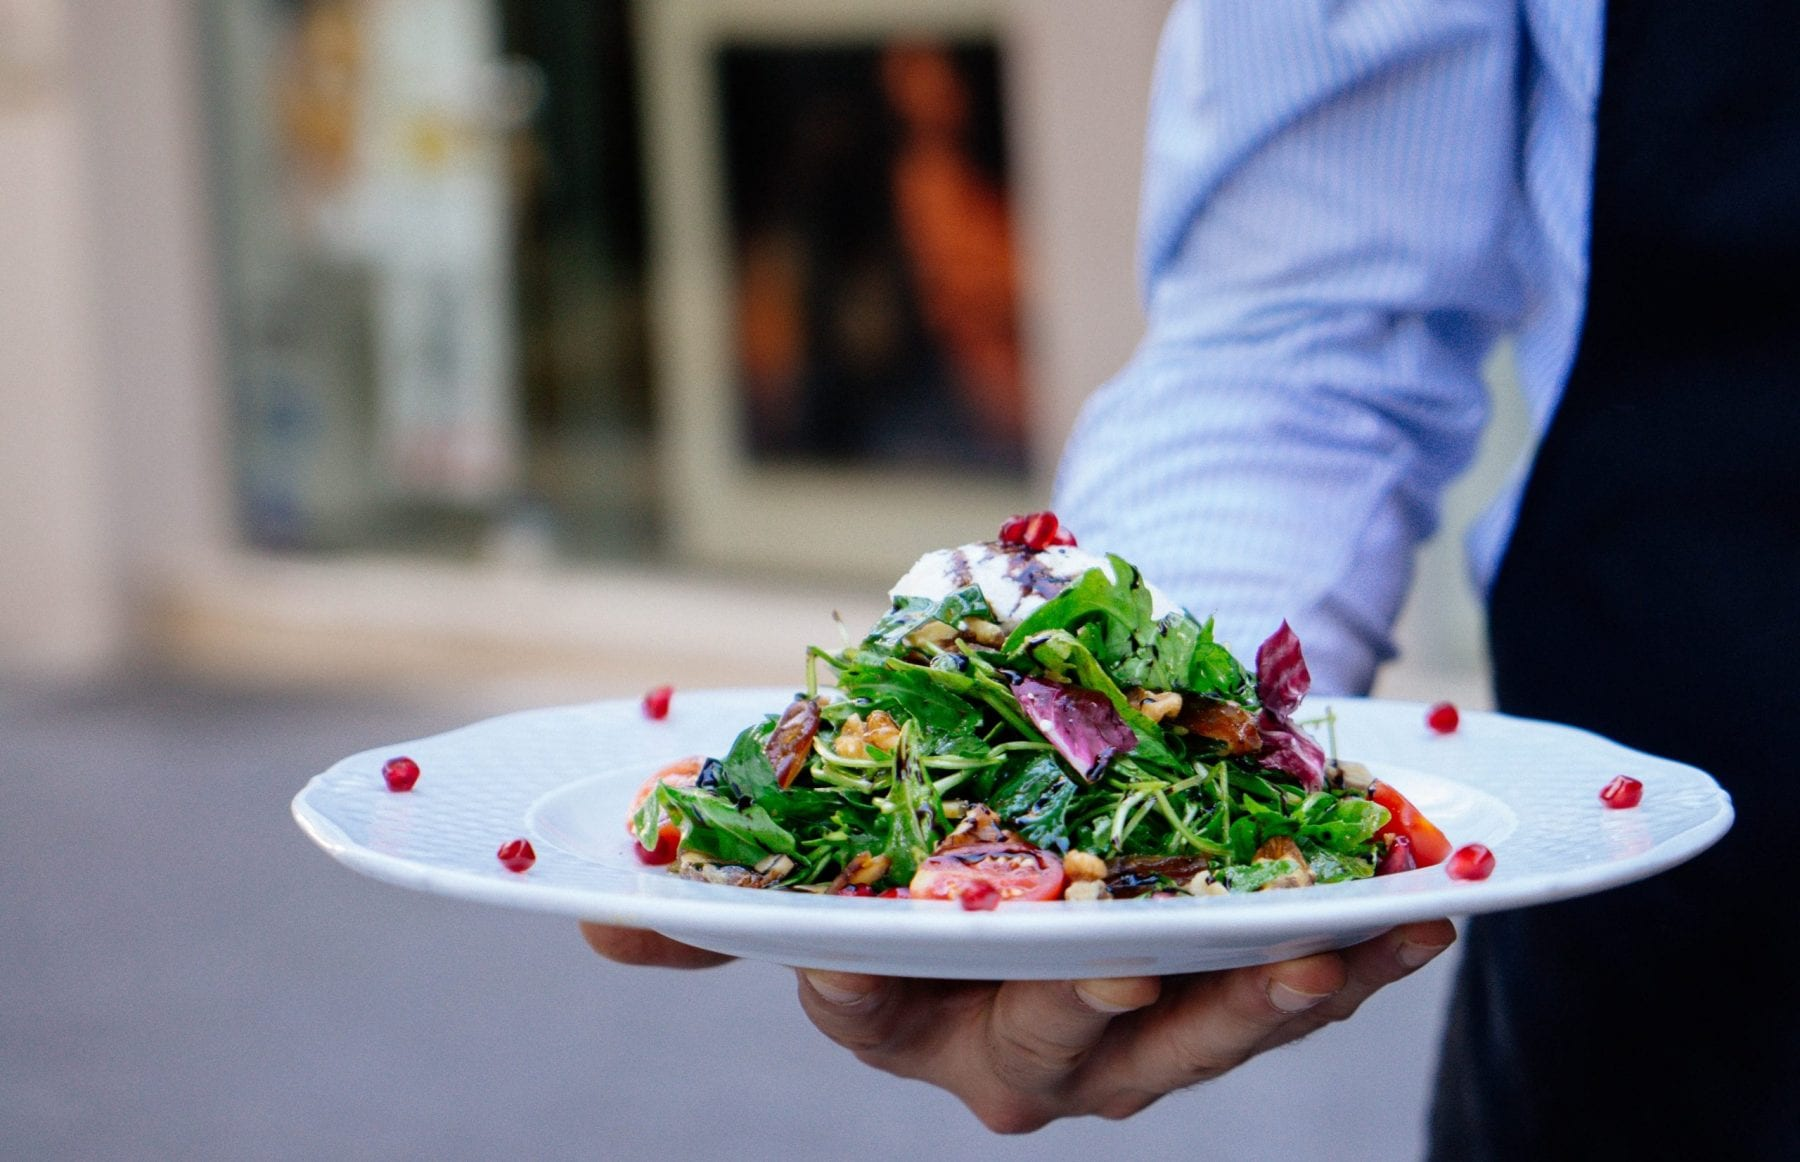 Waiter food service should know about allergens